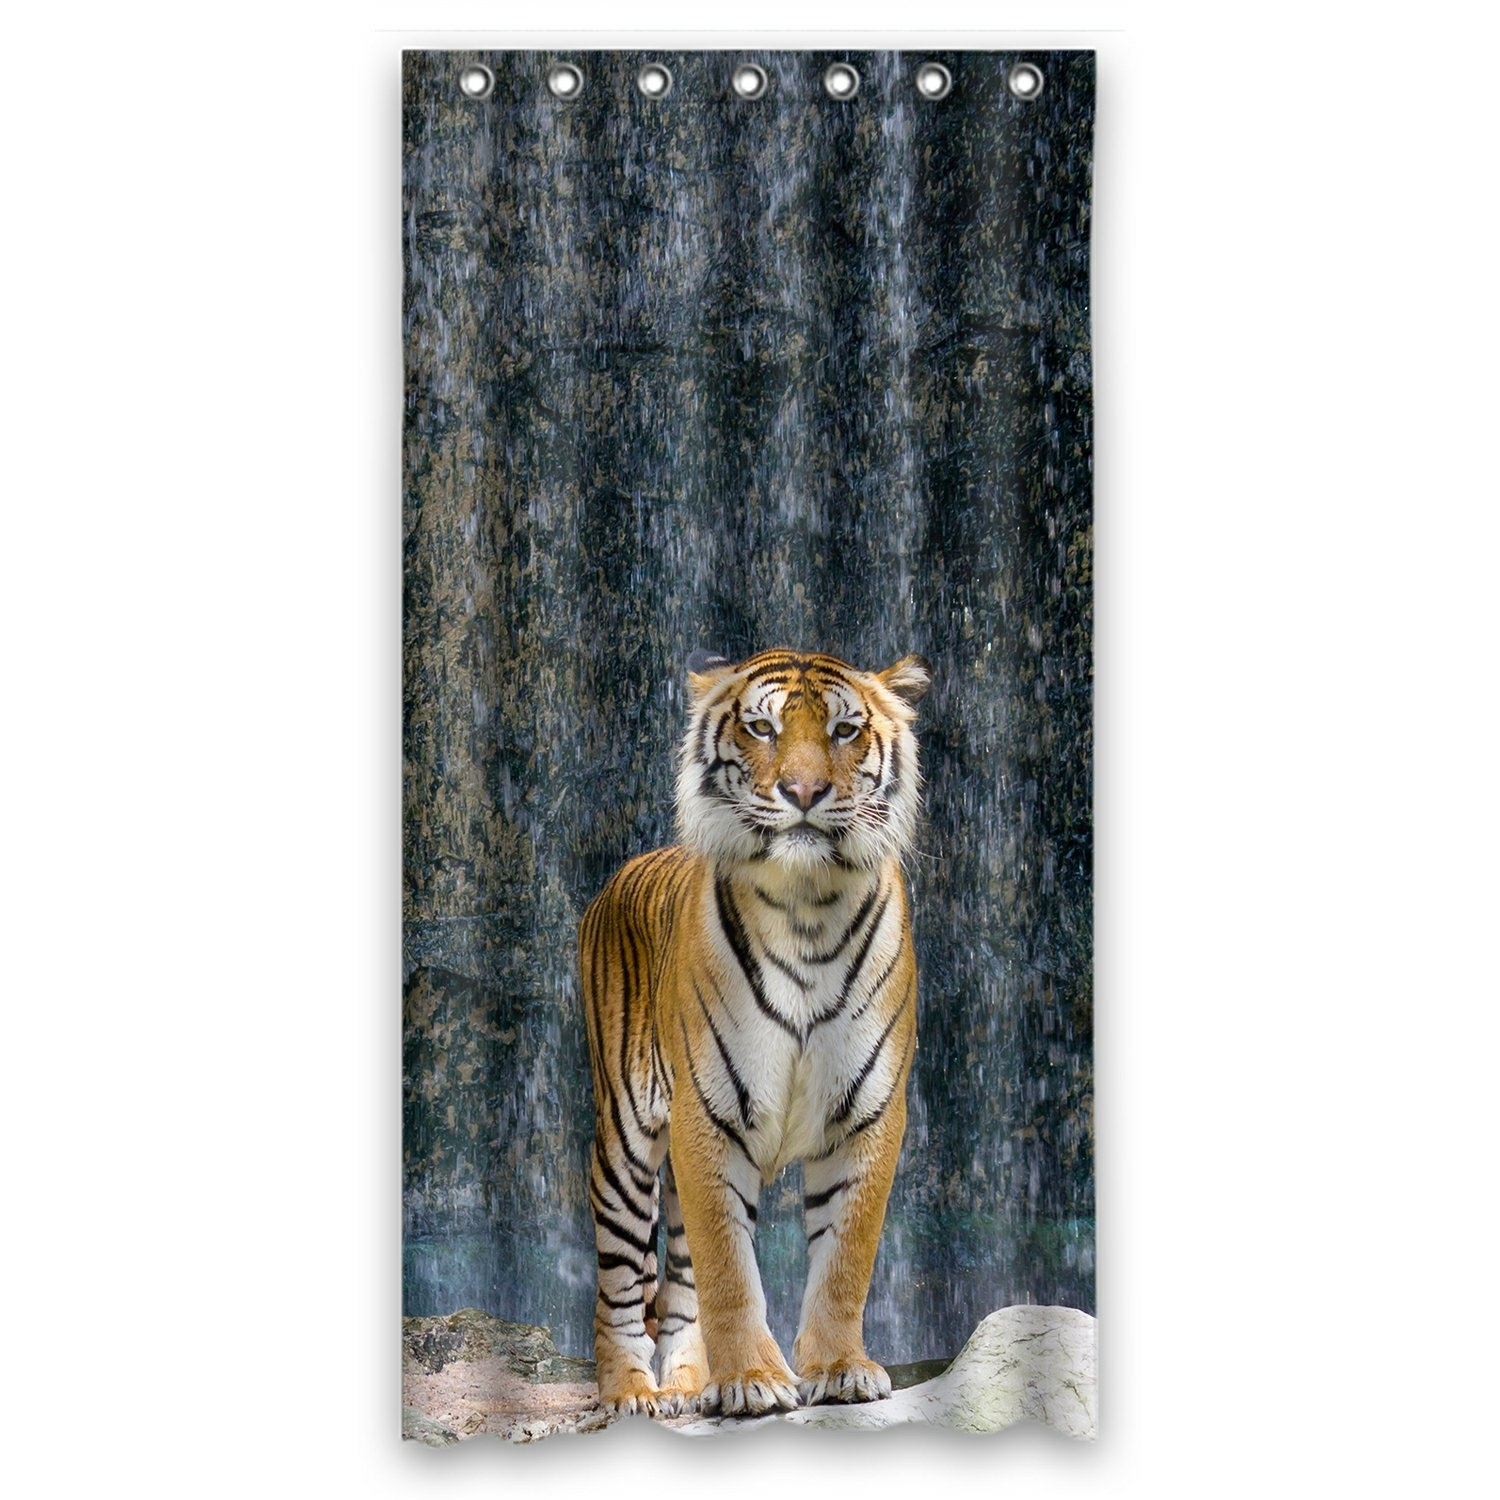 Animal Shower Curtain, Tiger Standing on the Rock near the waterfall mountain landscape Shower Curtain 36x72 inch